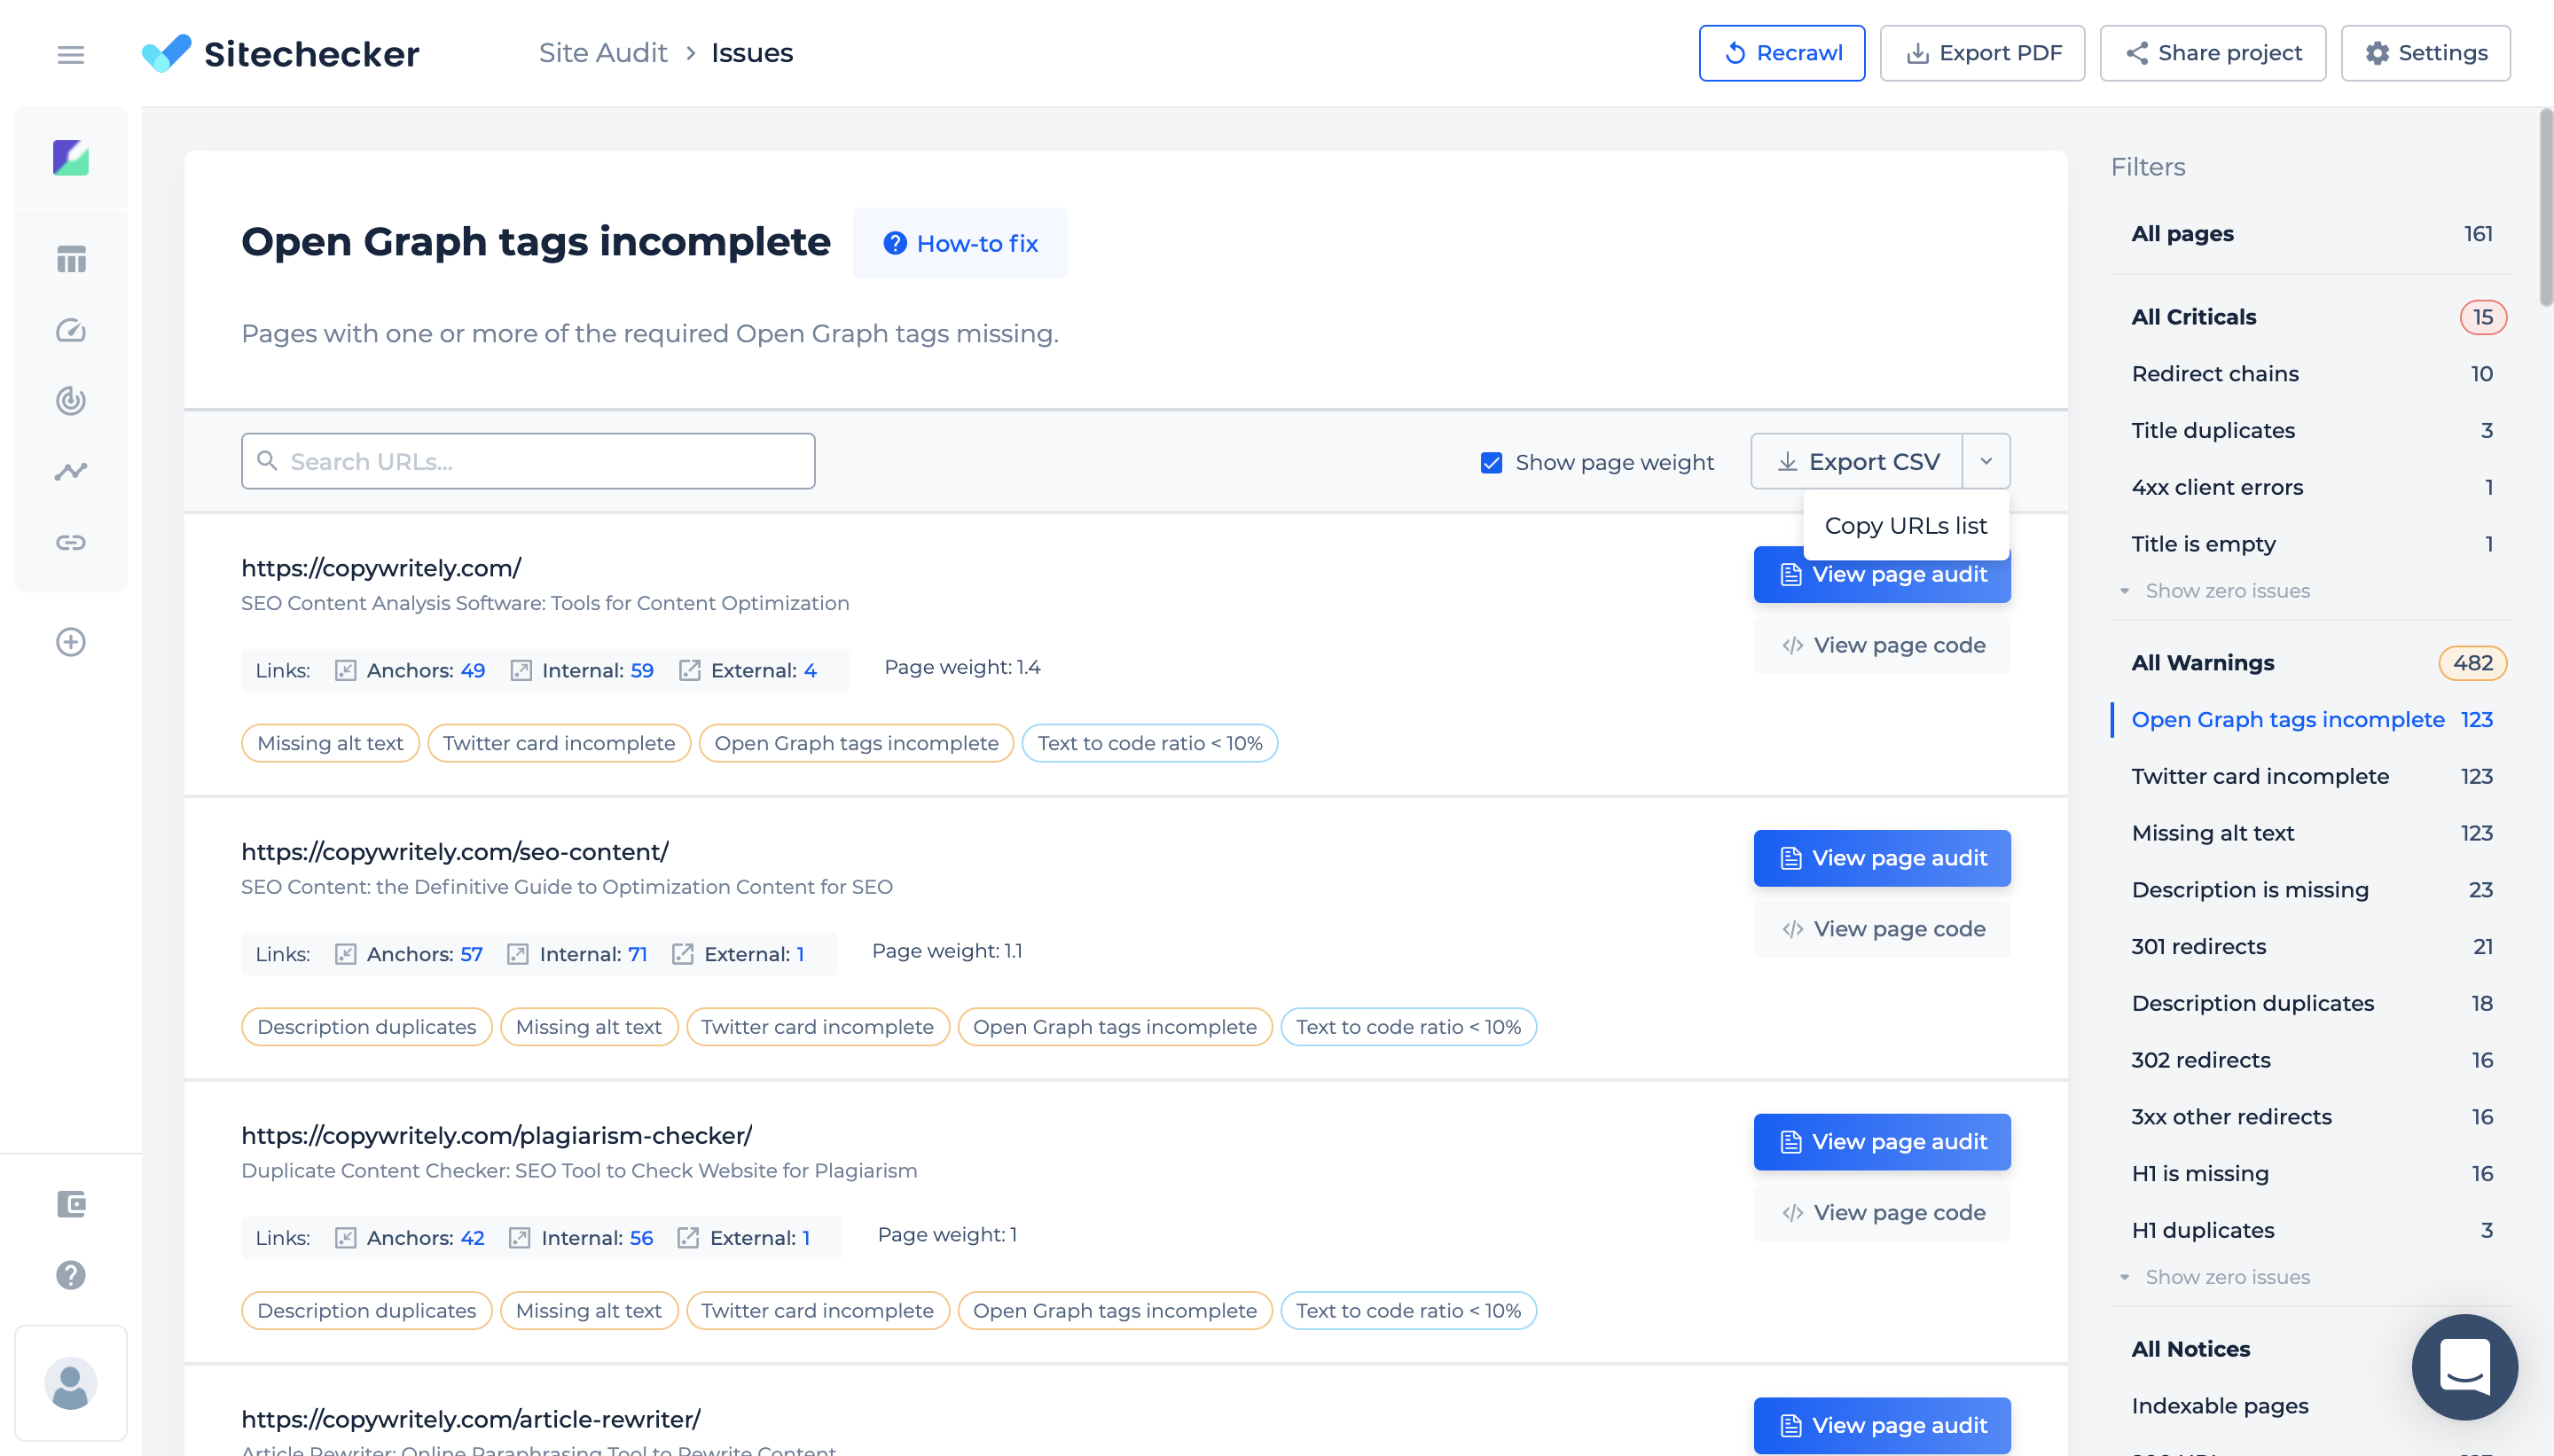 site audit issues page design update